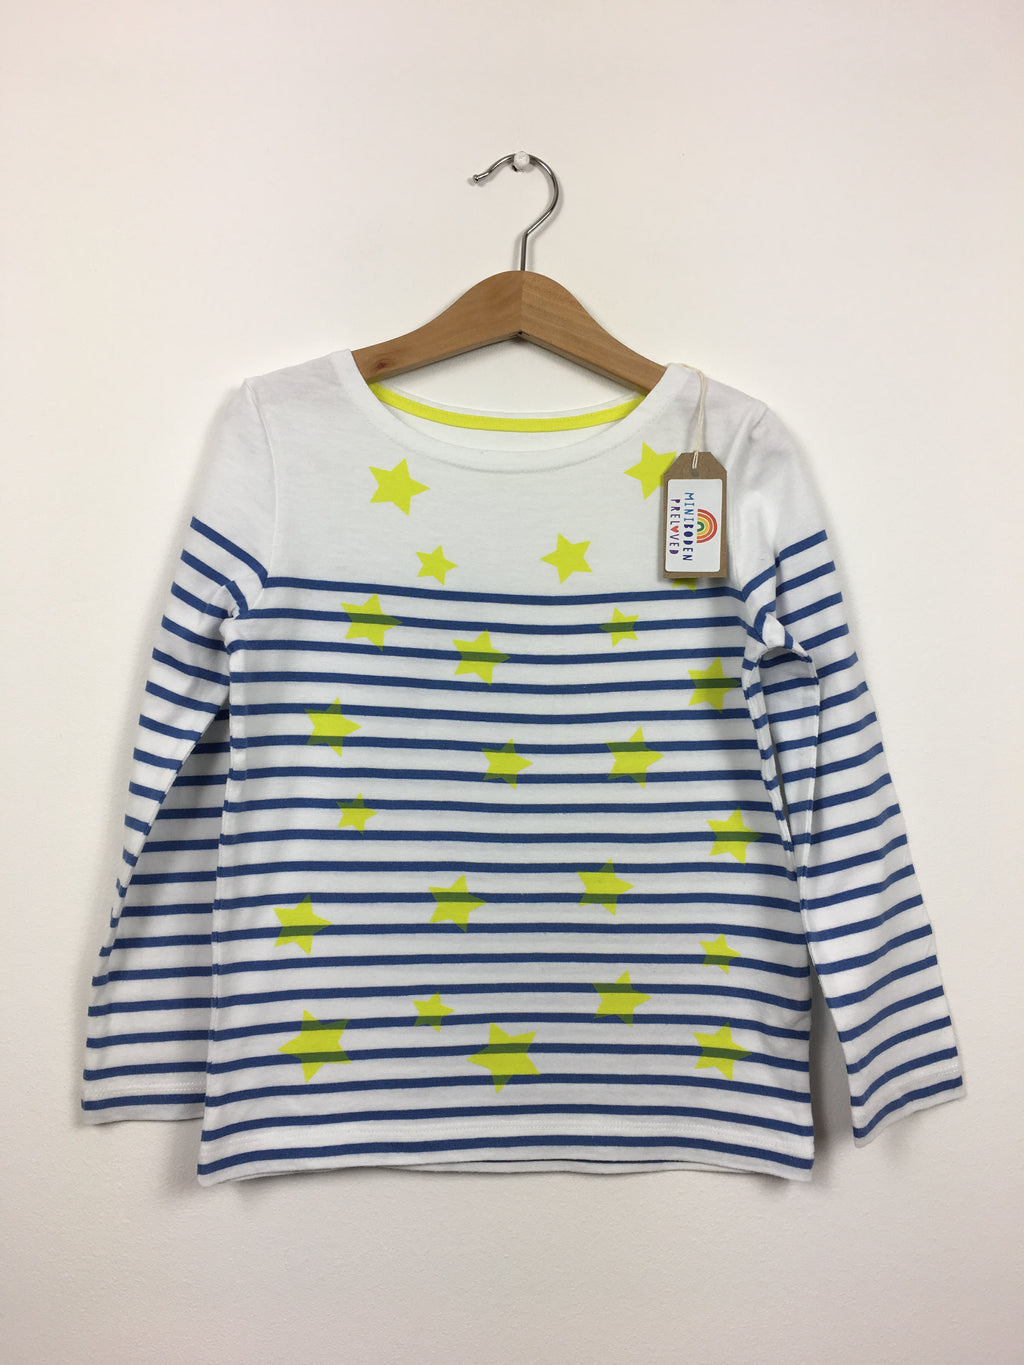 Blue & White Stripes/Star Print Boatneck Top (5-6 Years)